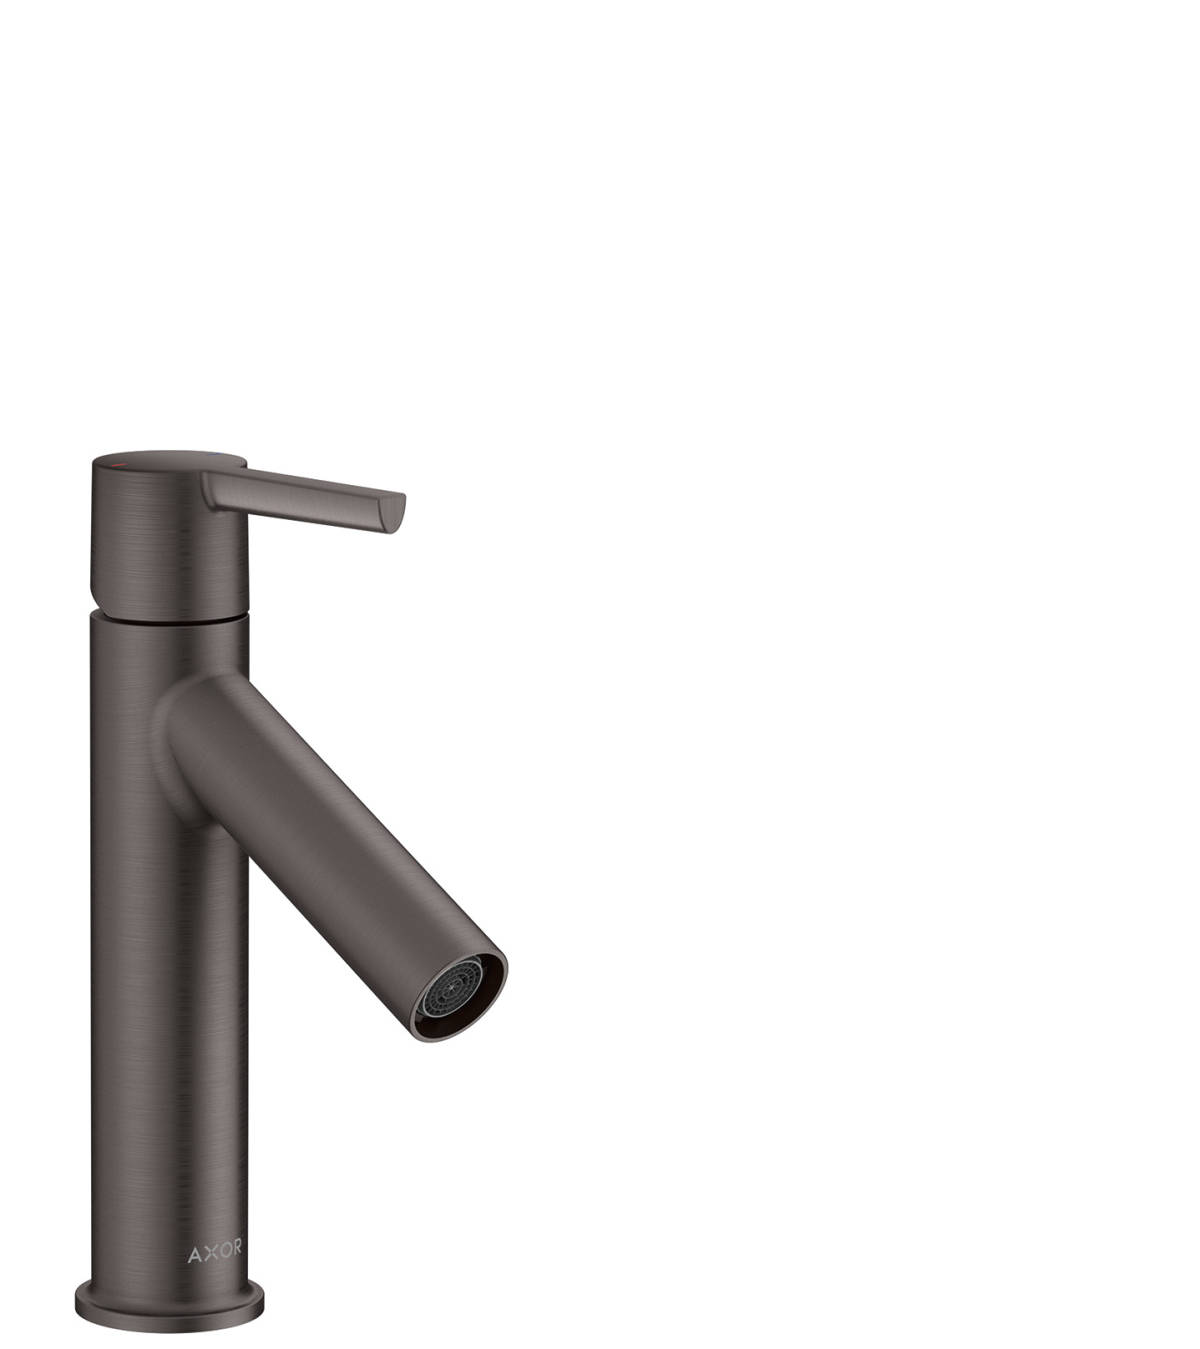 Single lever basin mixer 100 with lever handle and waste set, Brushed Black Chrome, 10003340